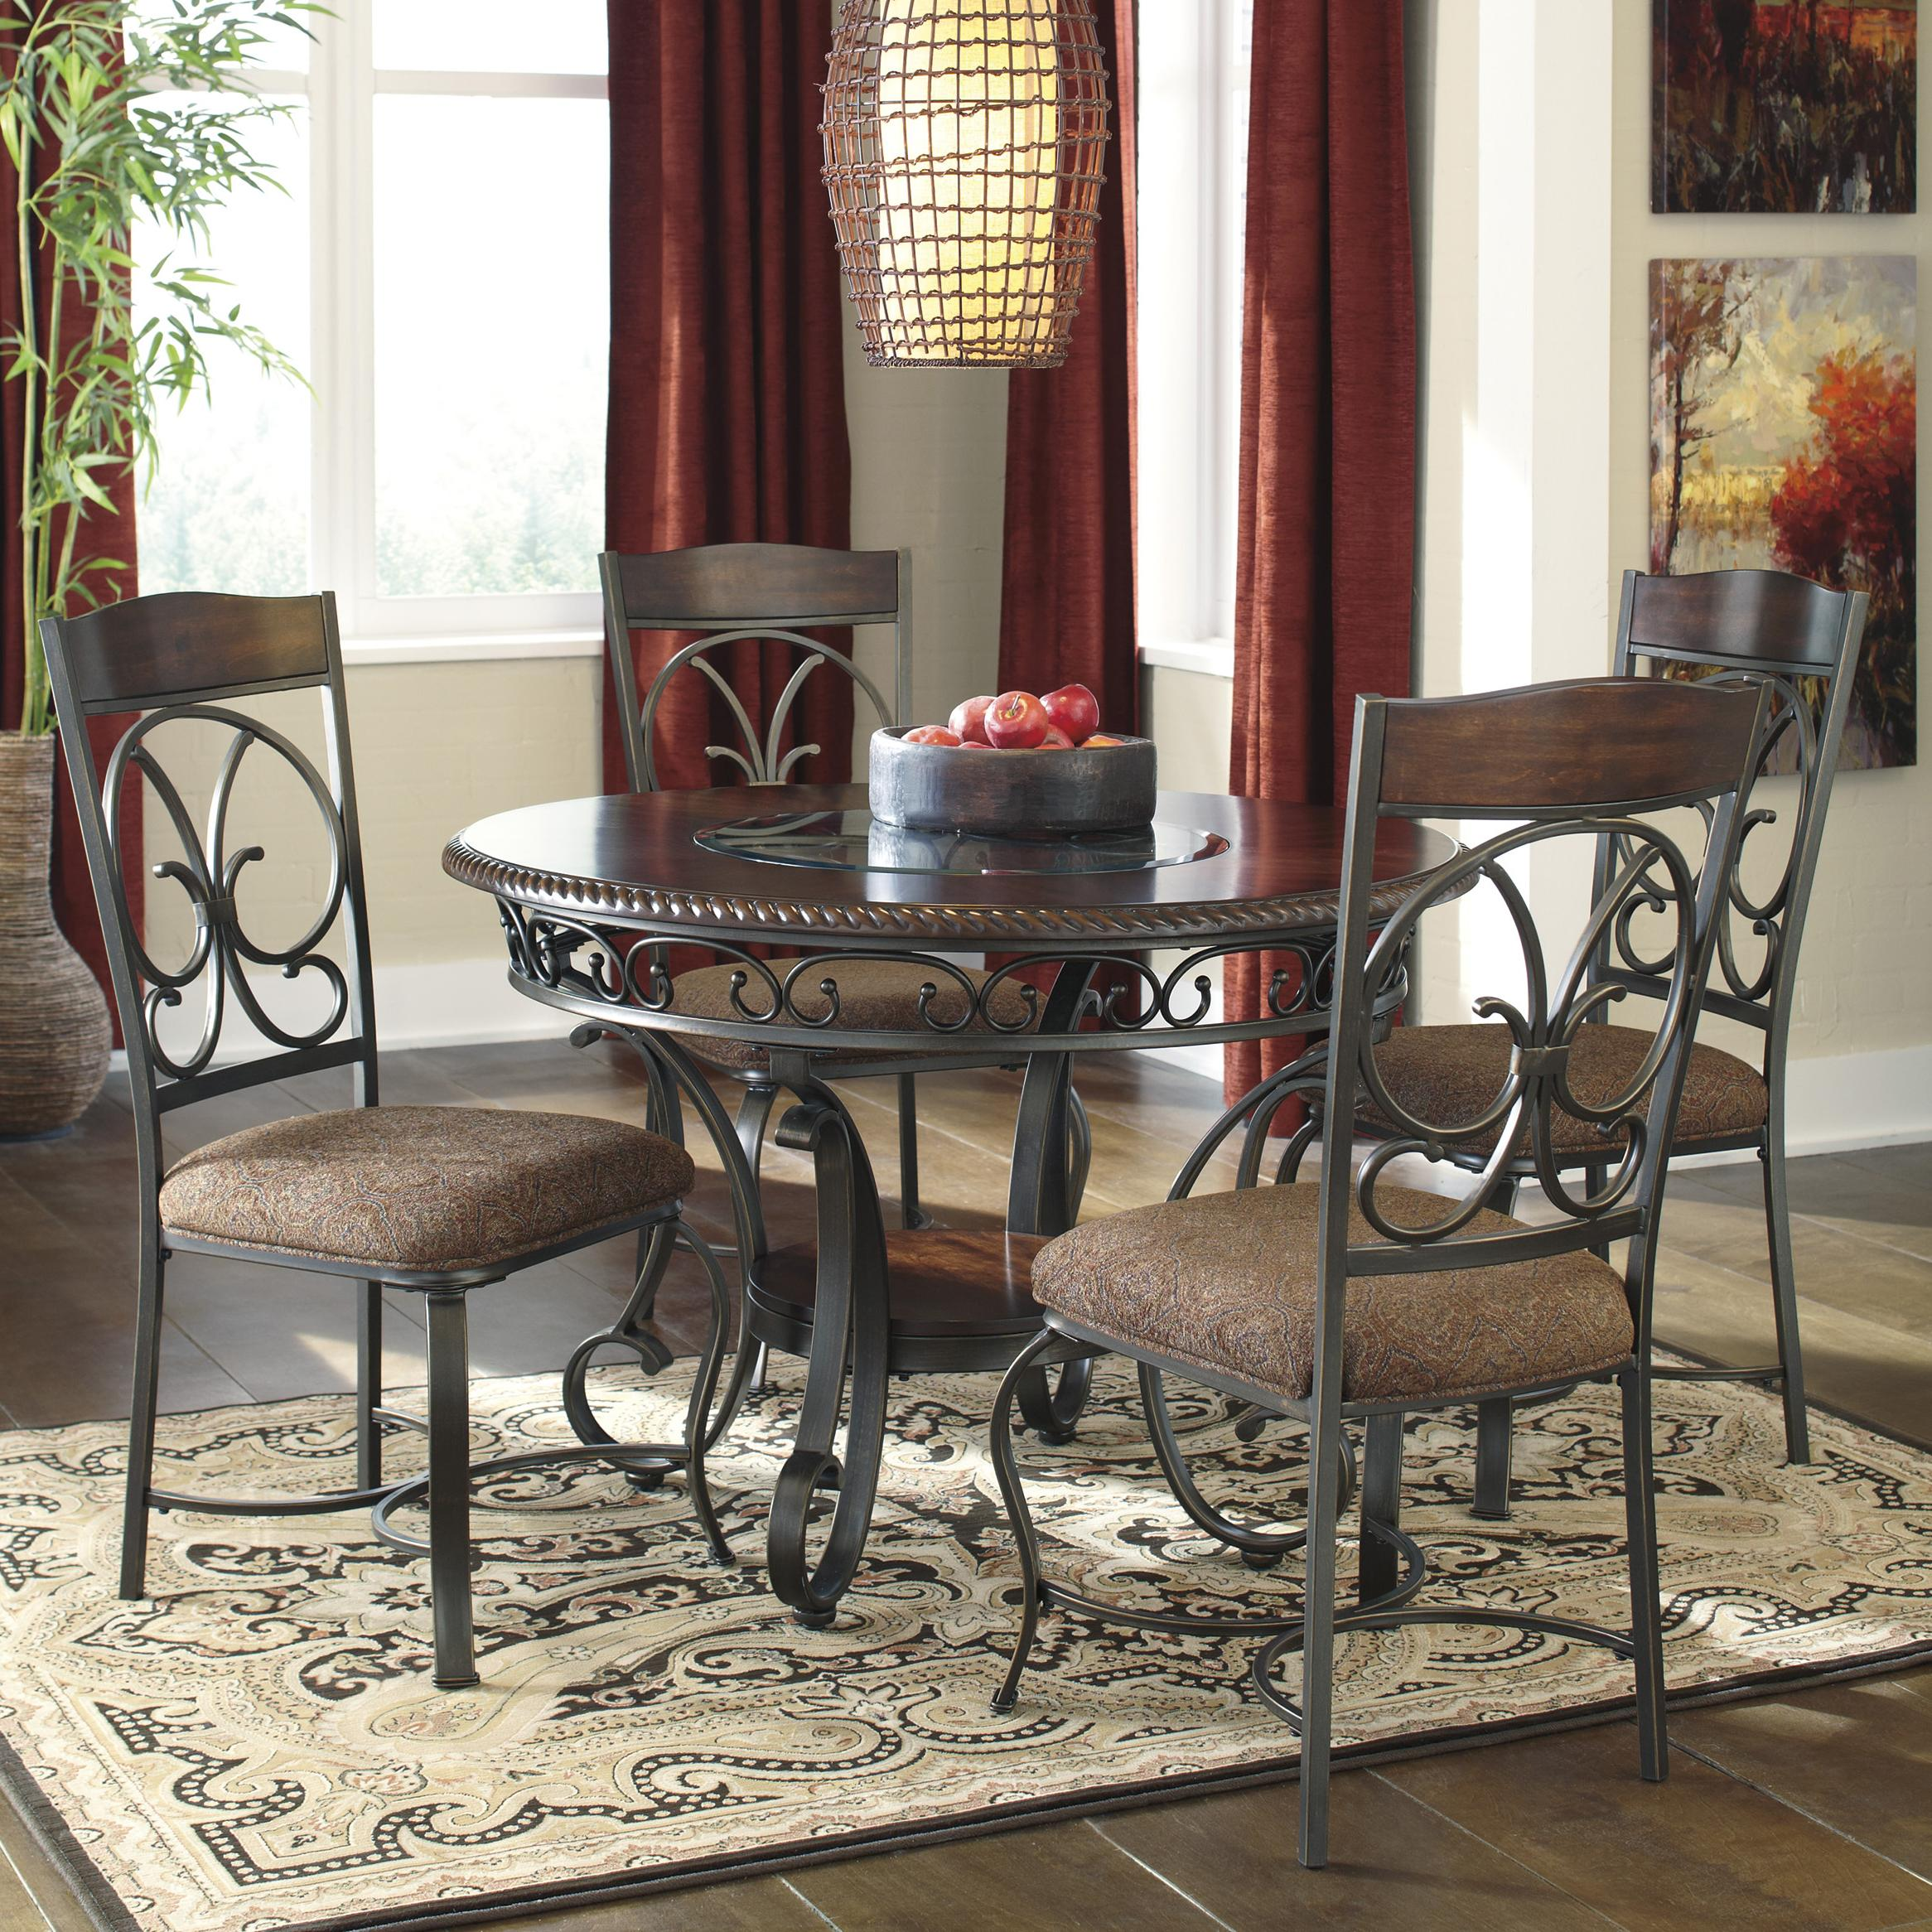 Signature design by ashley glambrey round dining table and Living room bedroom dinettes oh yeah